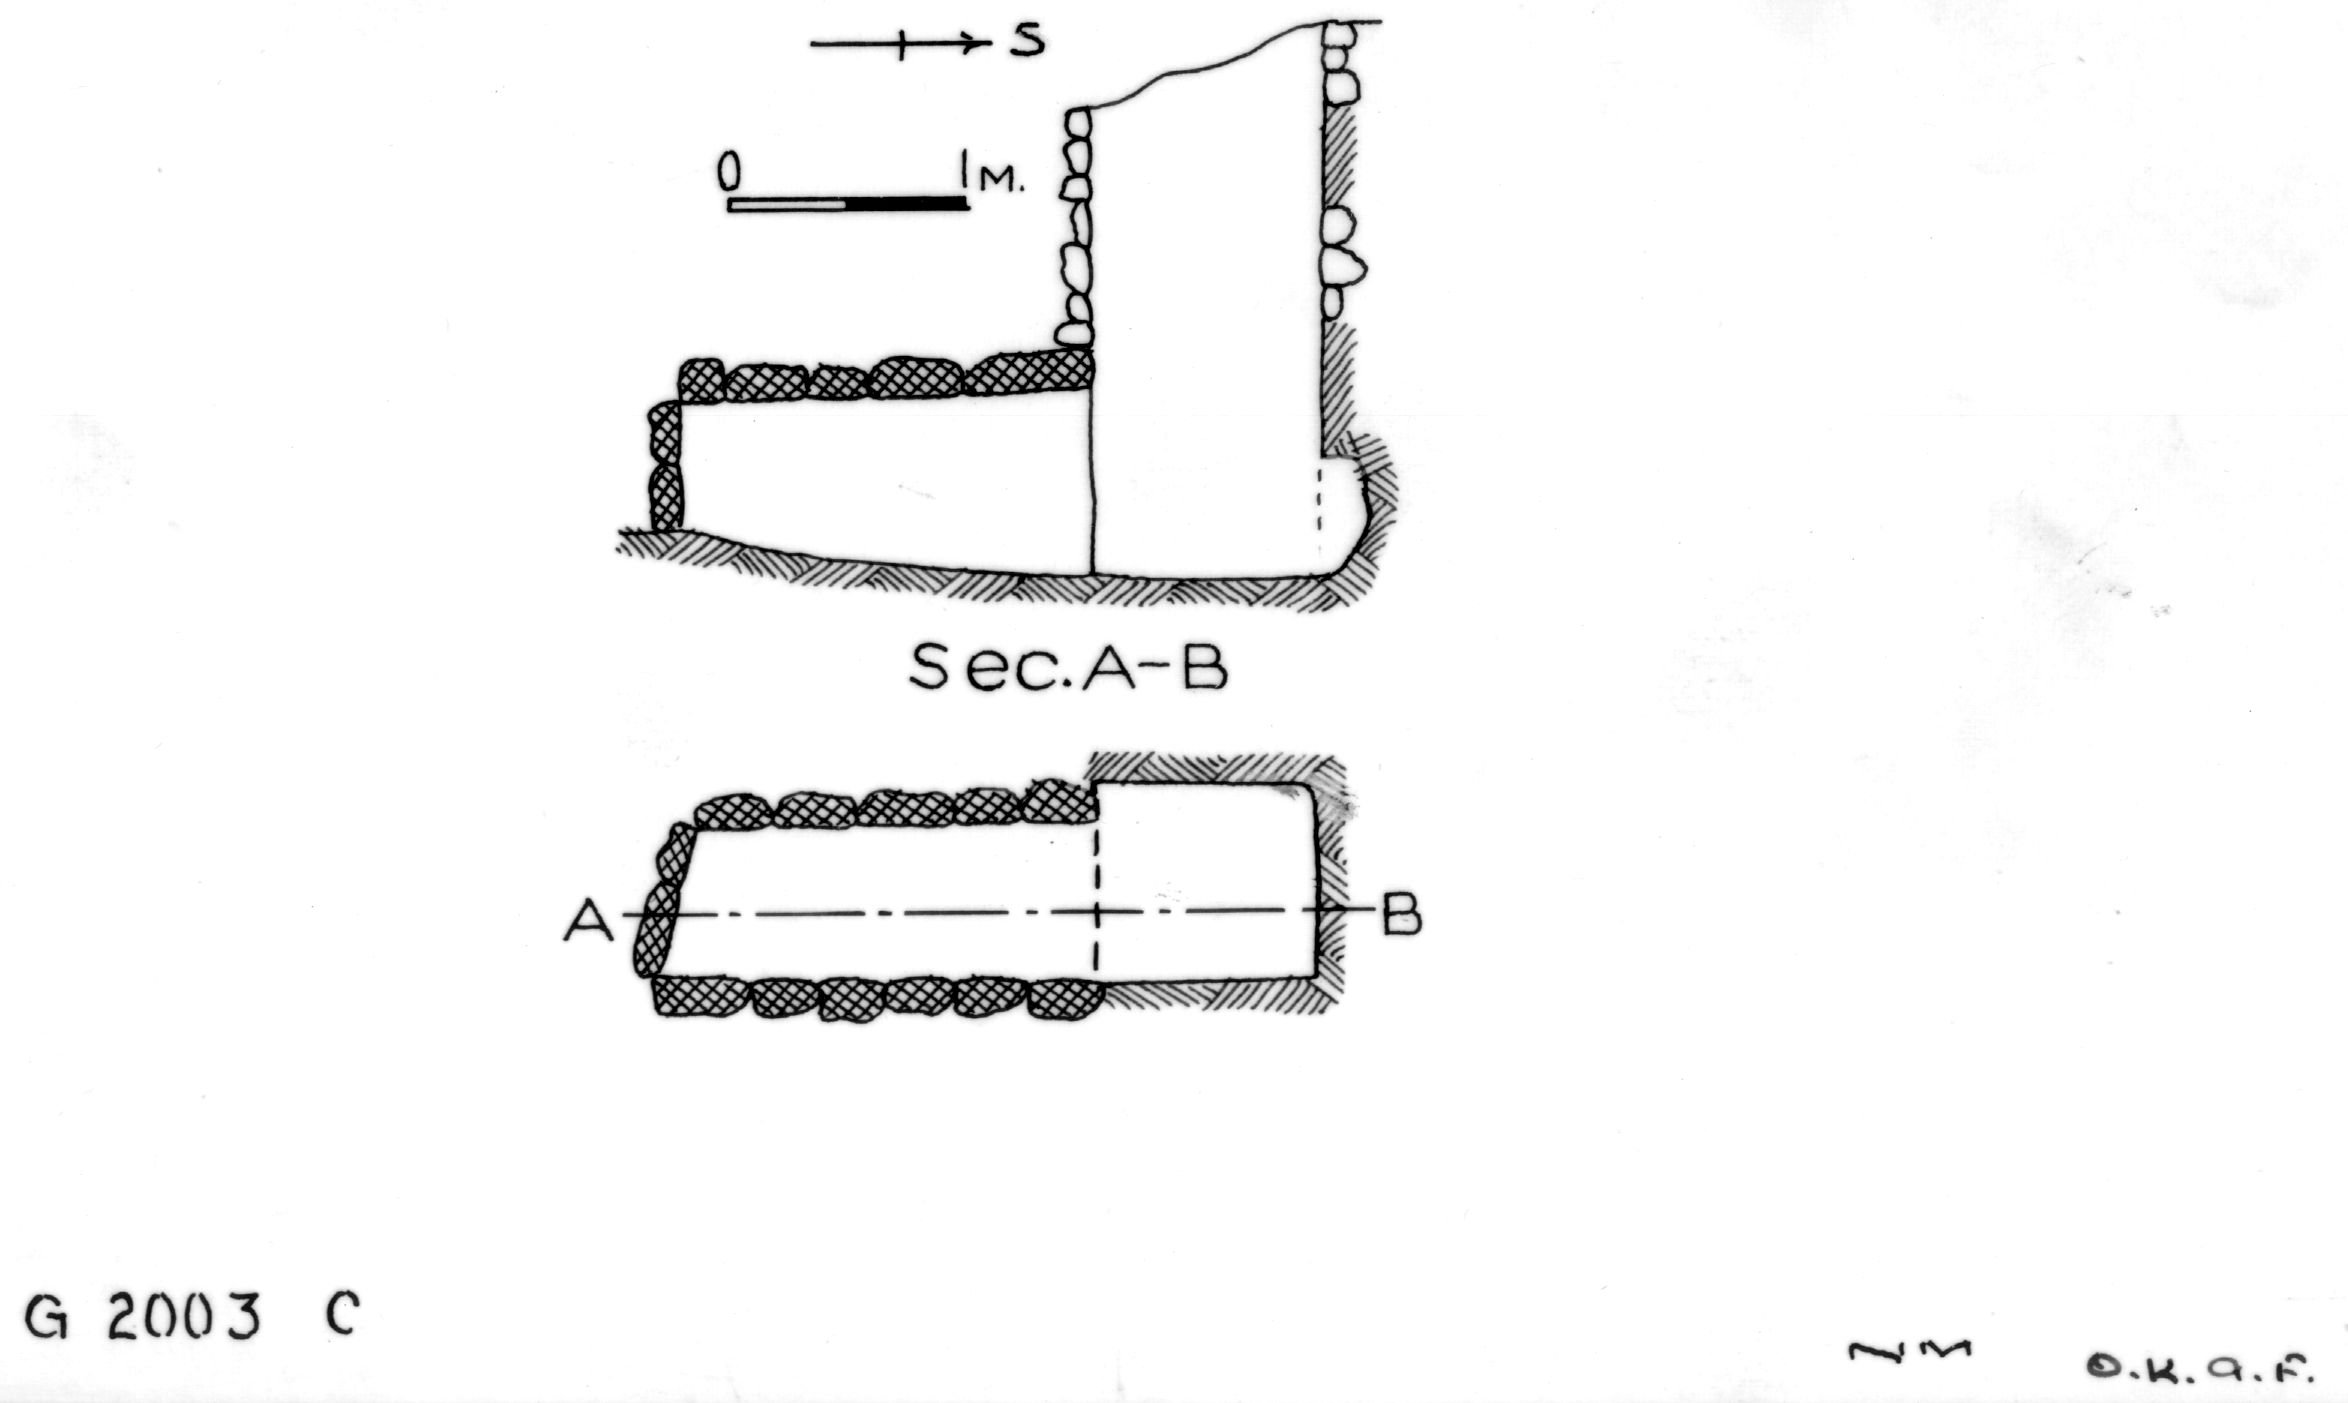 Maps and plans: G 2003, Shaft C